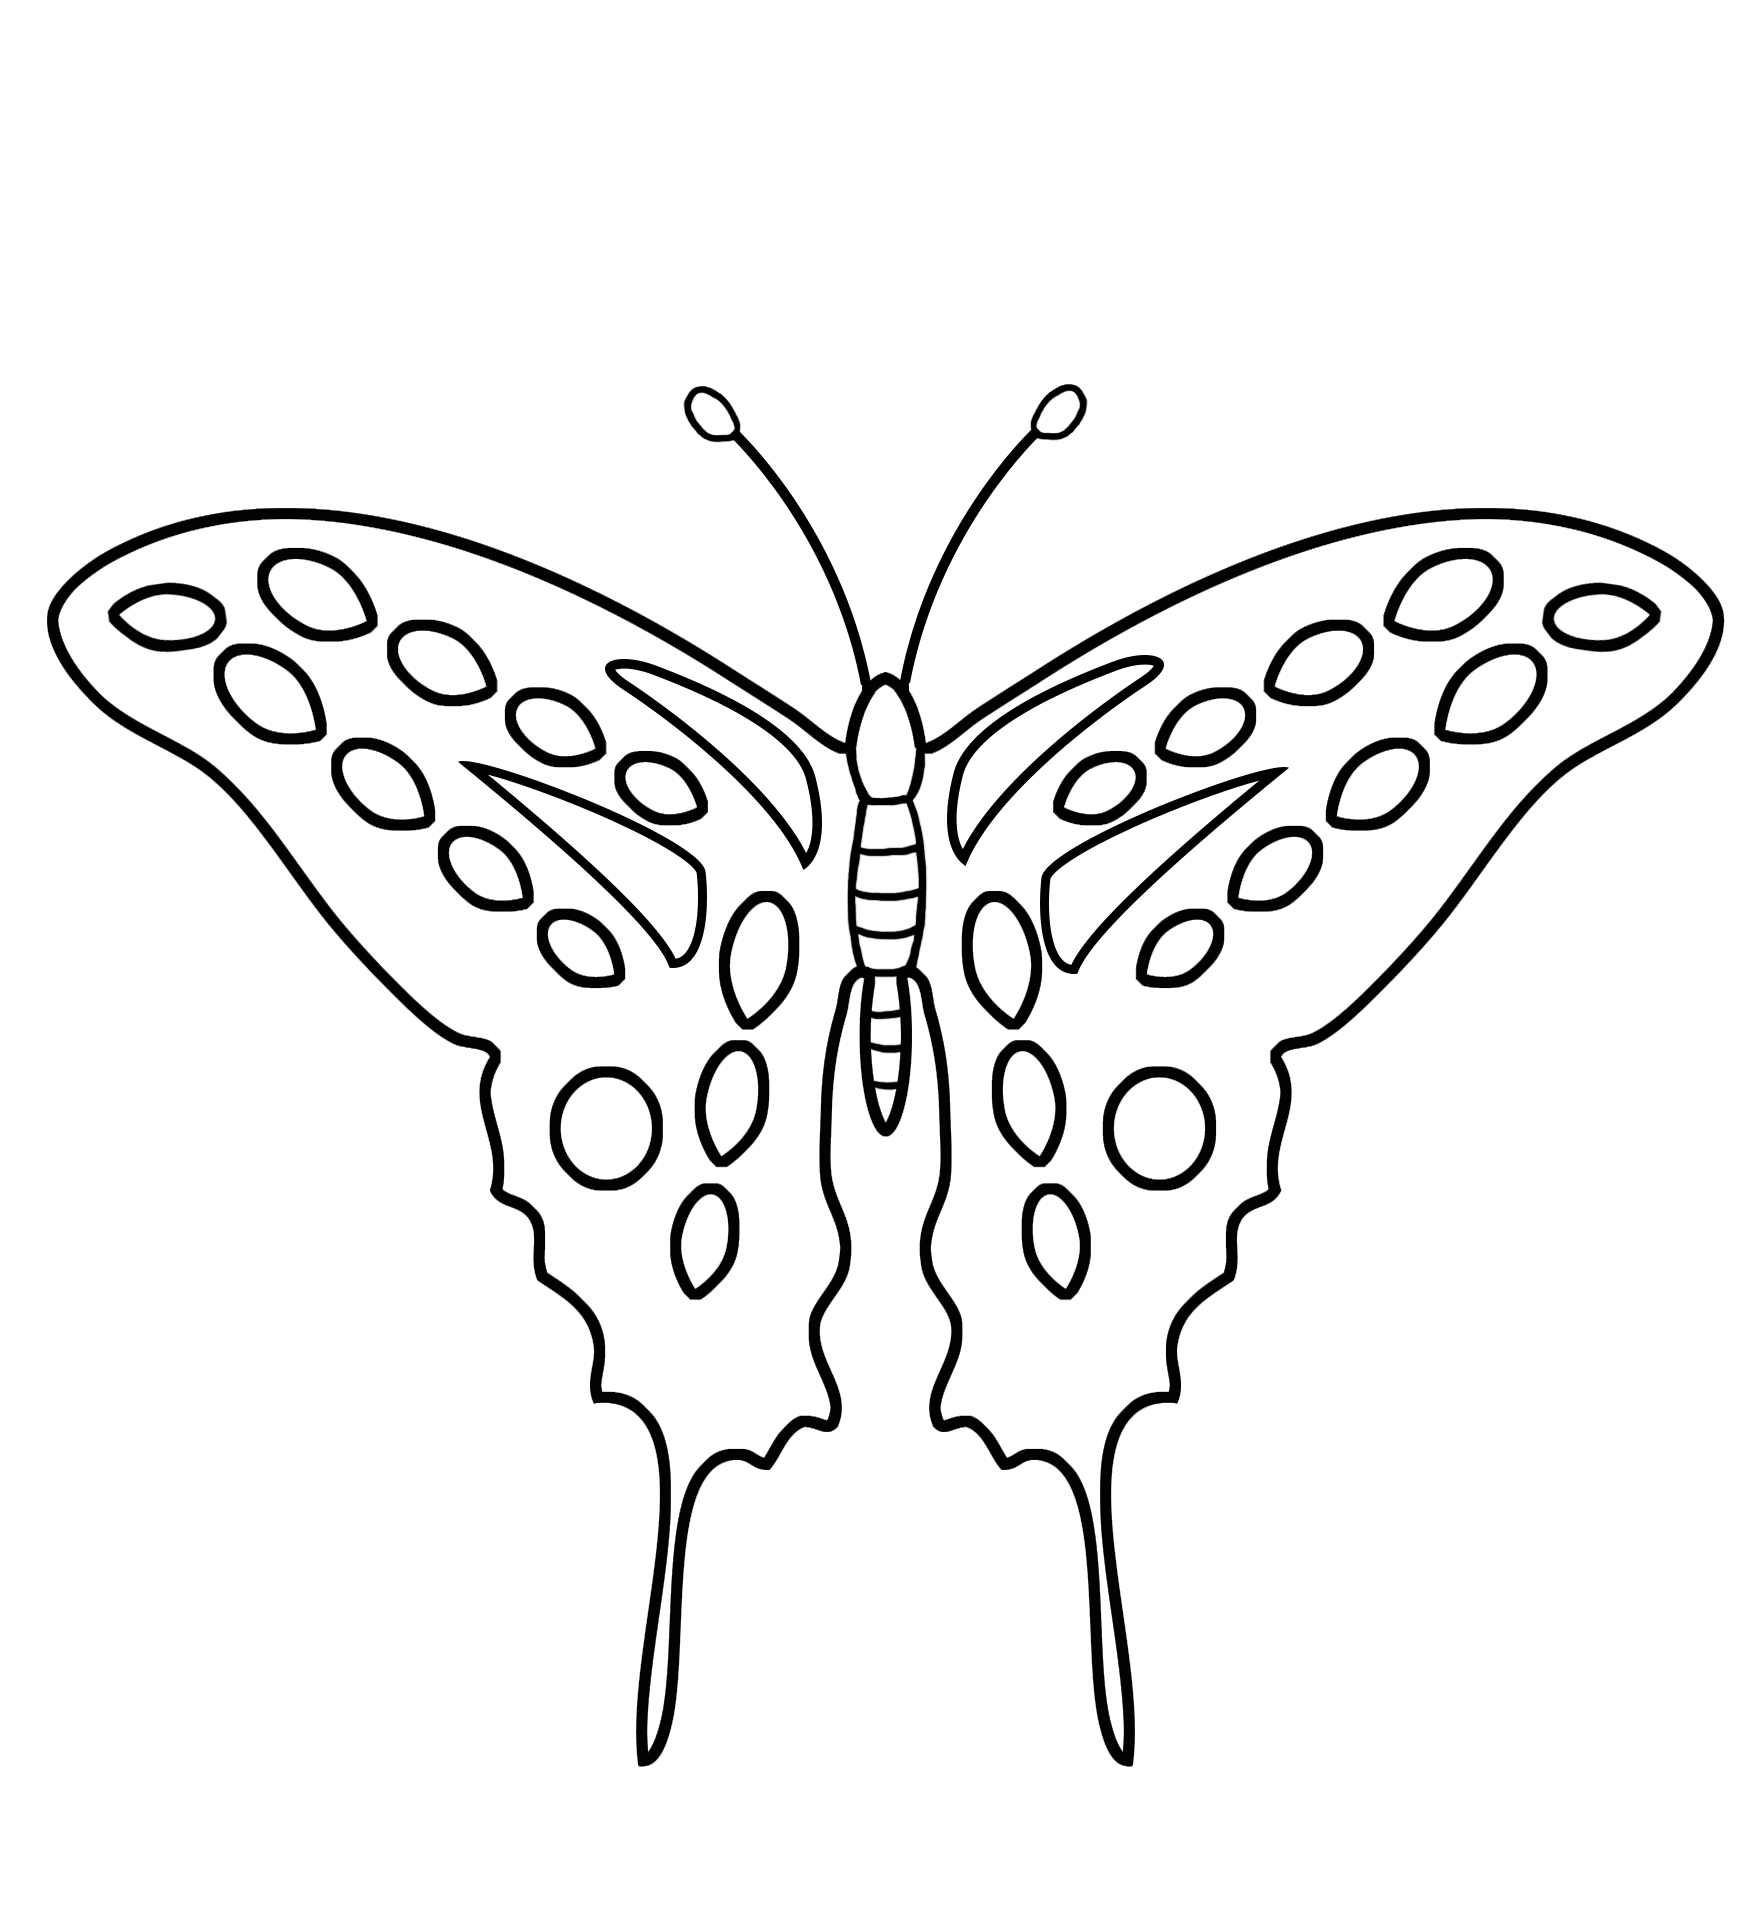 coloring page for kids with butterfly